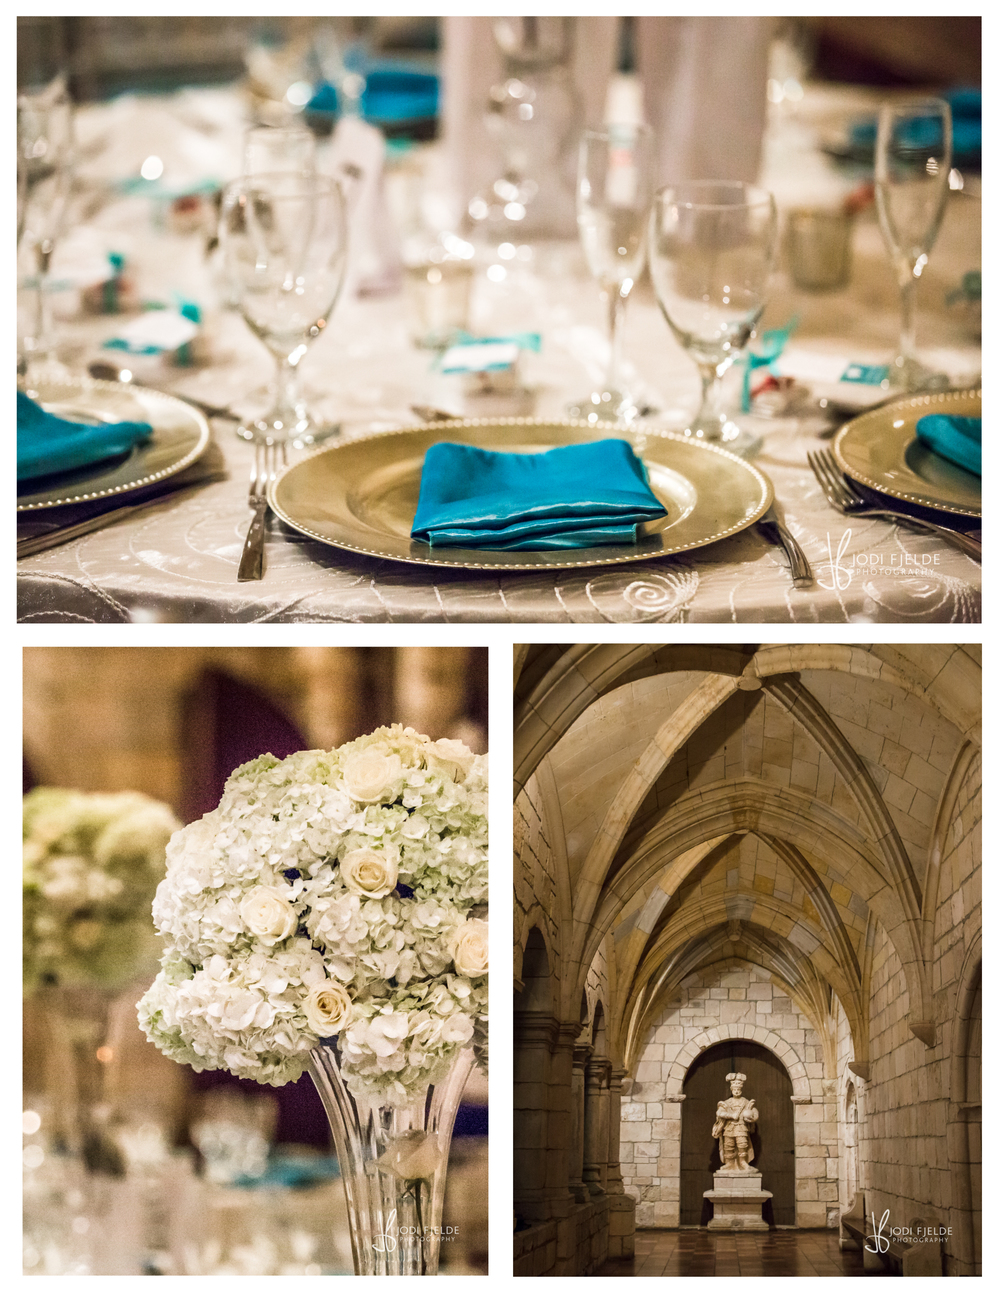 Ancient_Spanish_Monastery_Miami_Florida_wedding_Gio_Iggy_Jodi_Fjelde_Photography_15.jpg